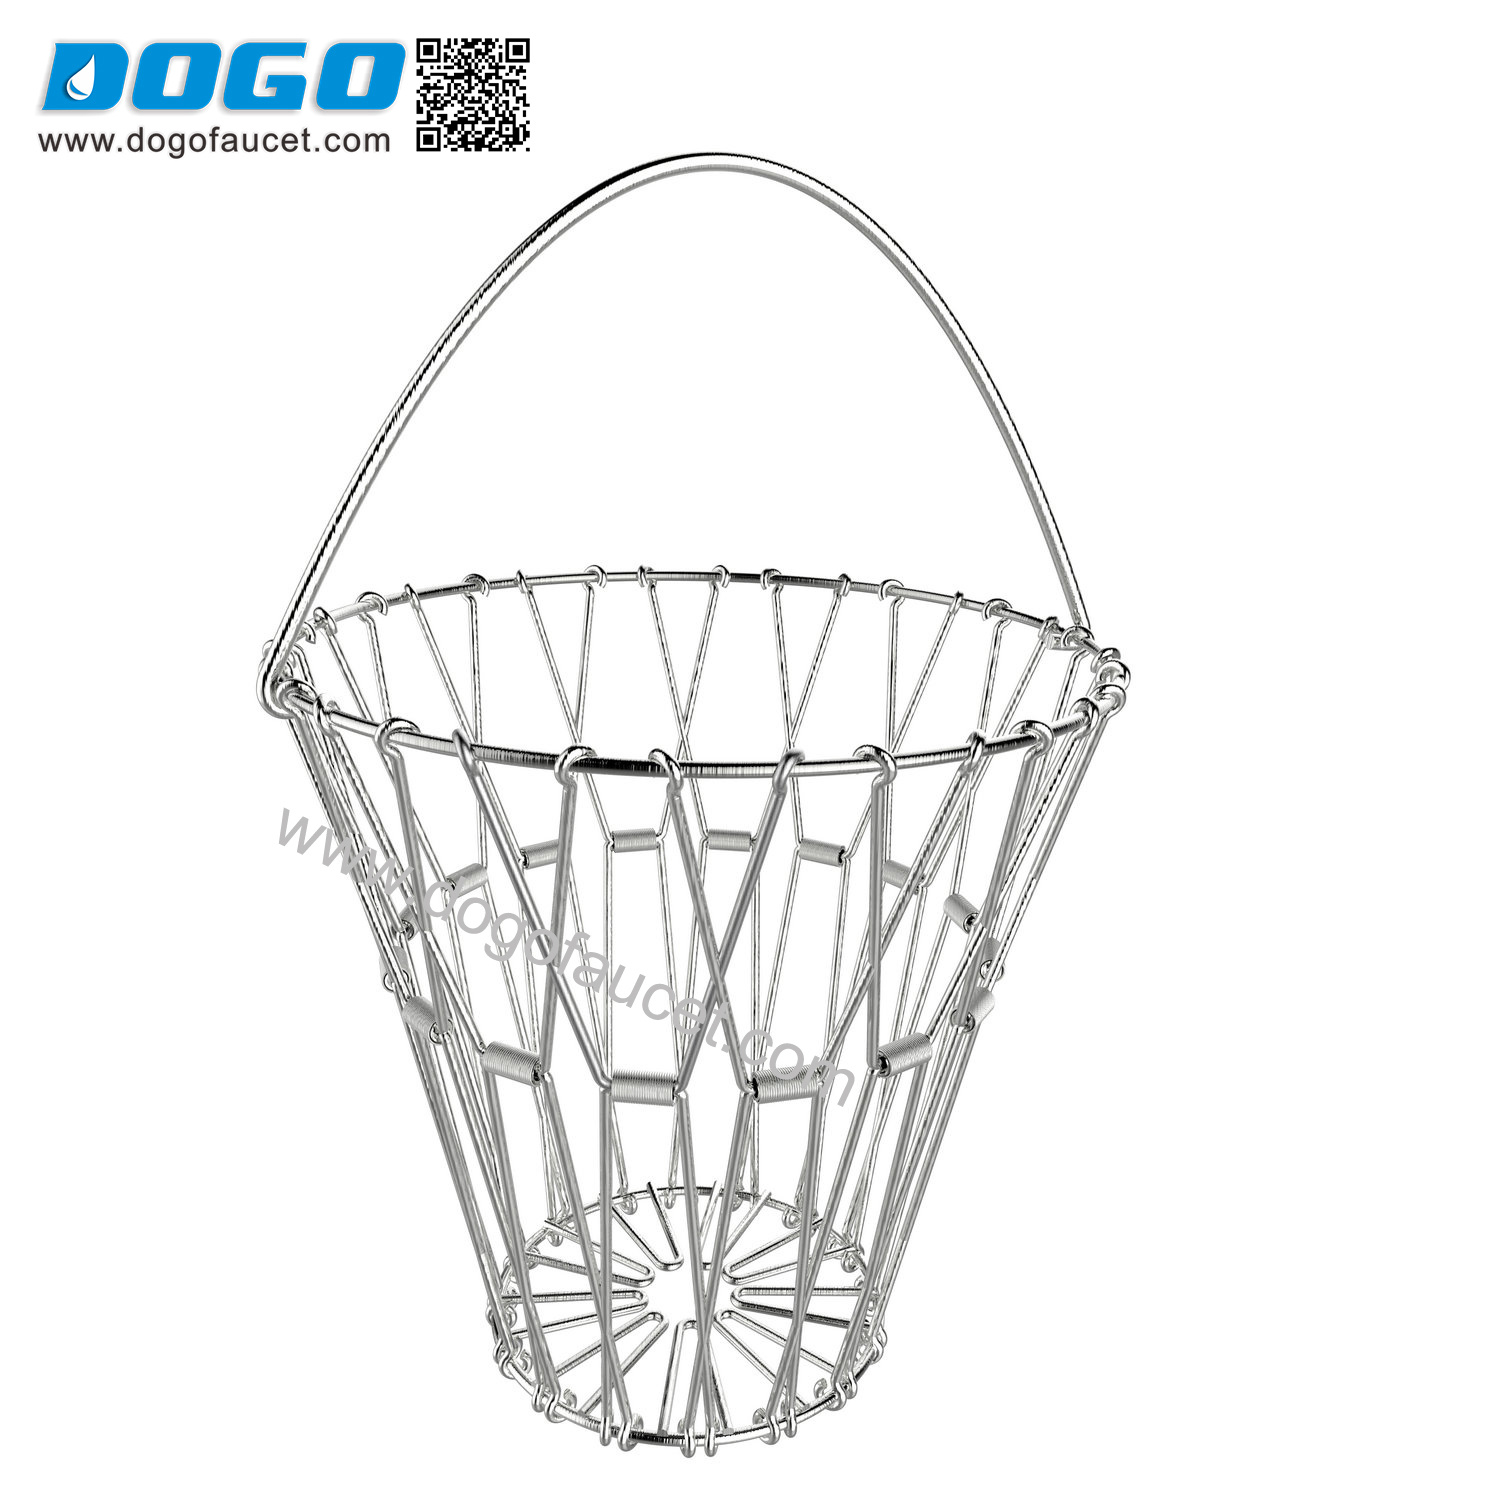 Edelstahlkorb Rund China Stainless Basket Stainless Basket Manufacturers Suppliers Made In China